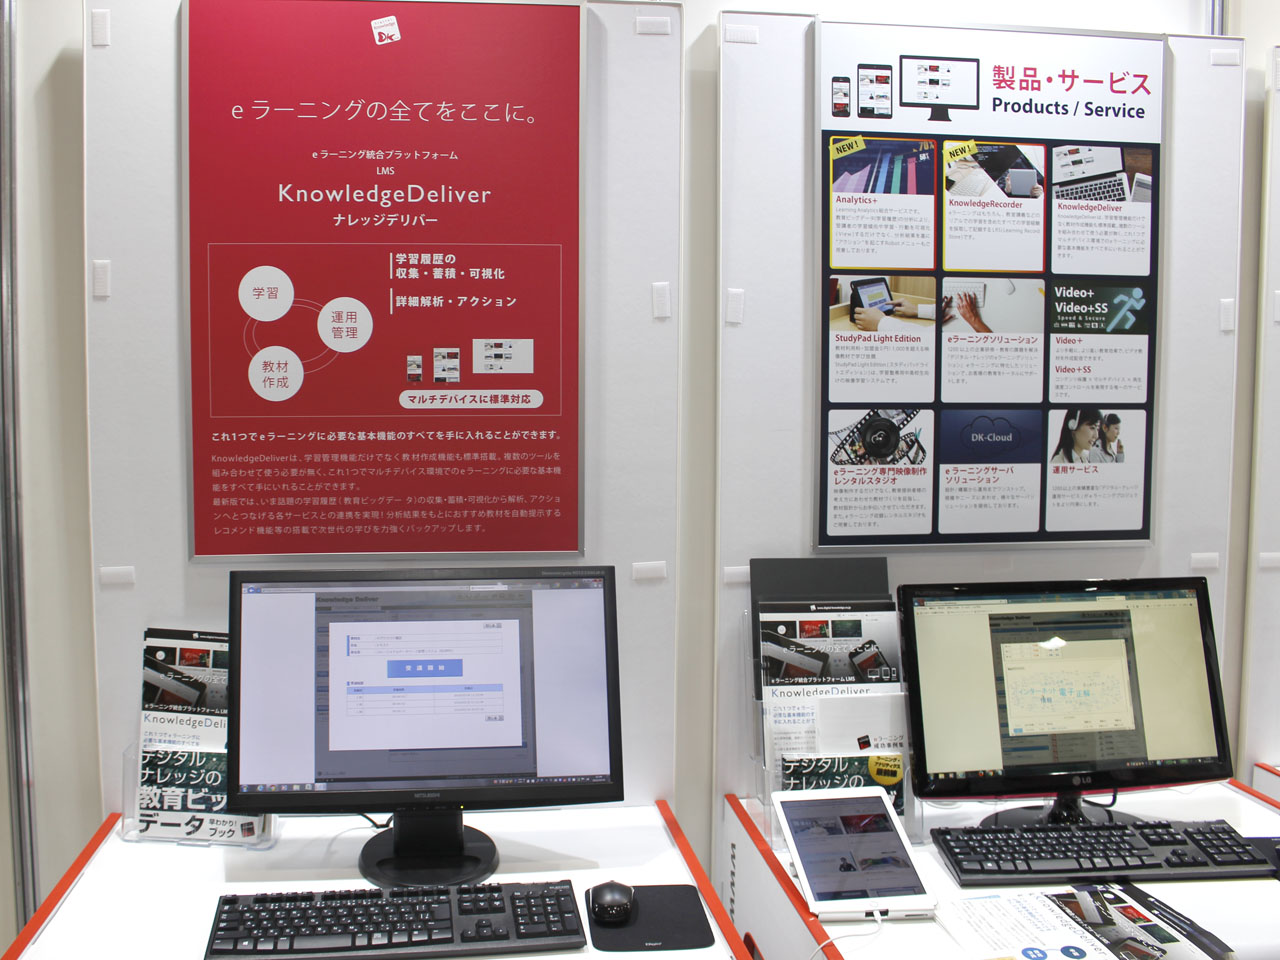 KnowledgeDeliverは、収集した学習履歴の分析から運用管理までが可能なソリューション。PowerPointや映像を活用した教材作成の機能も併せ持つ